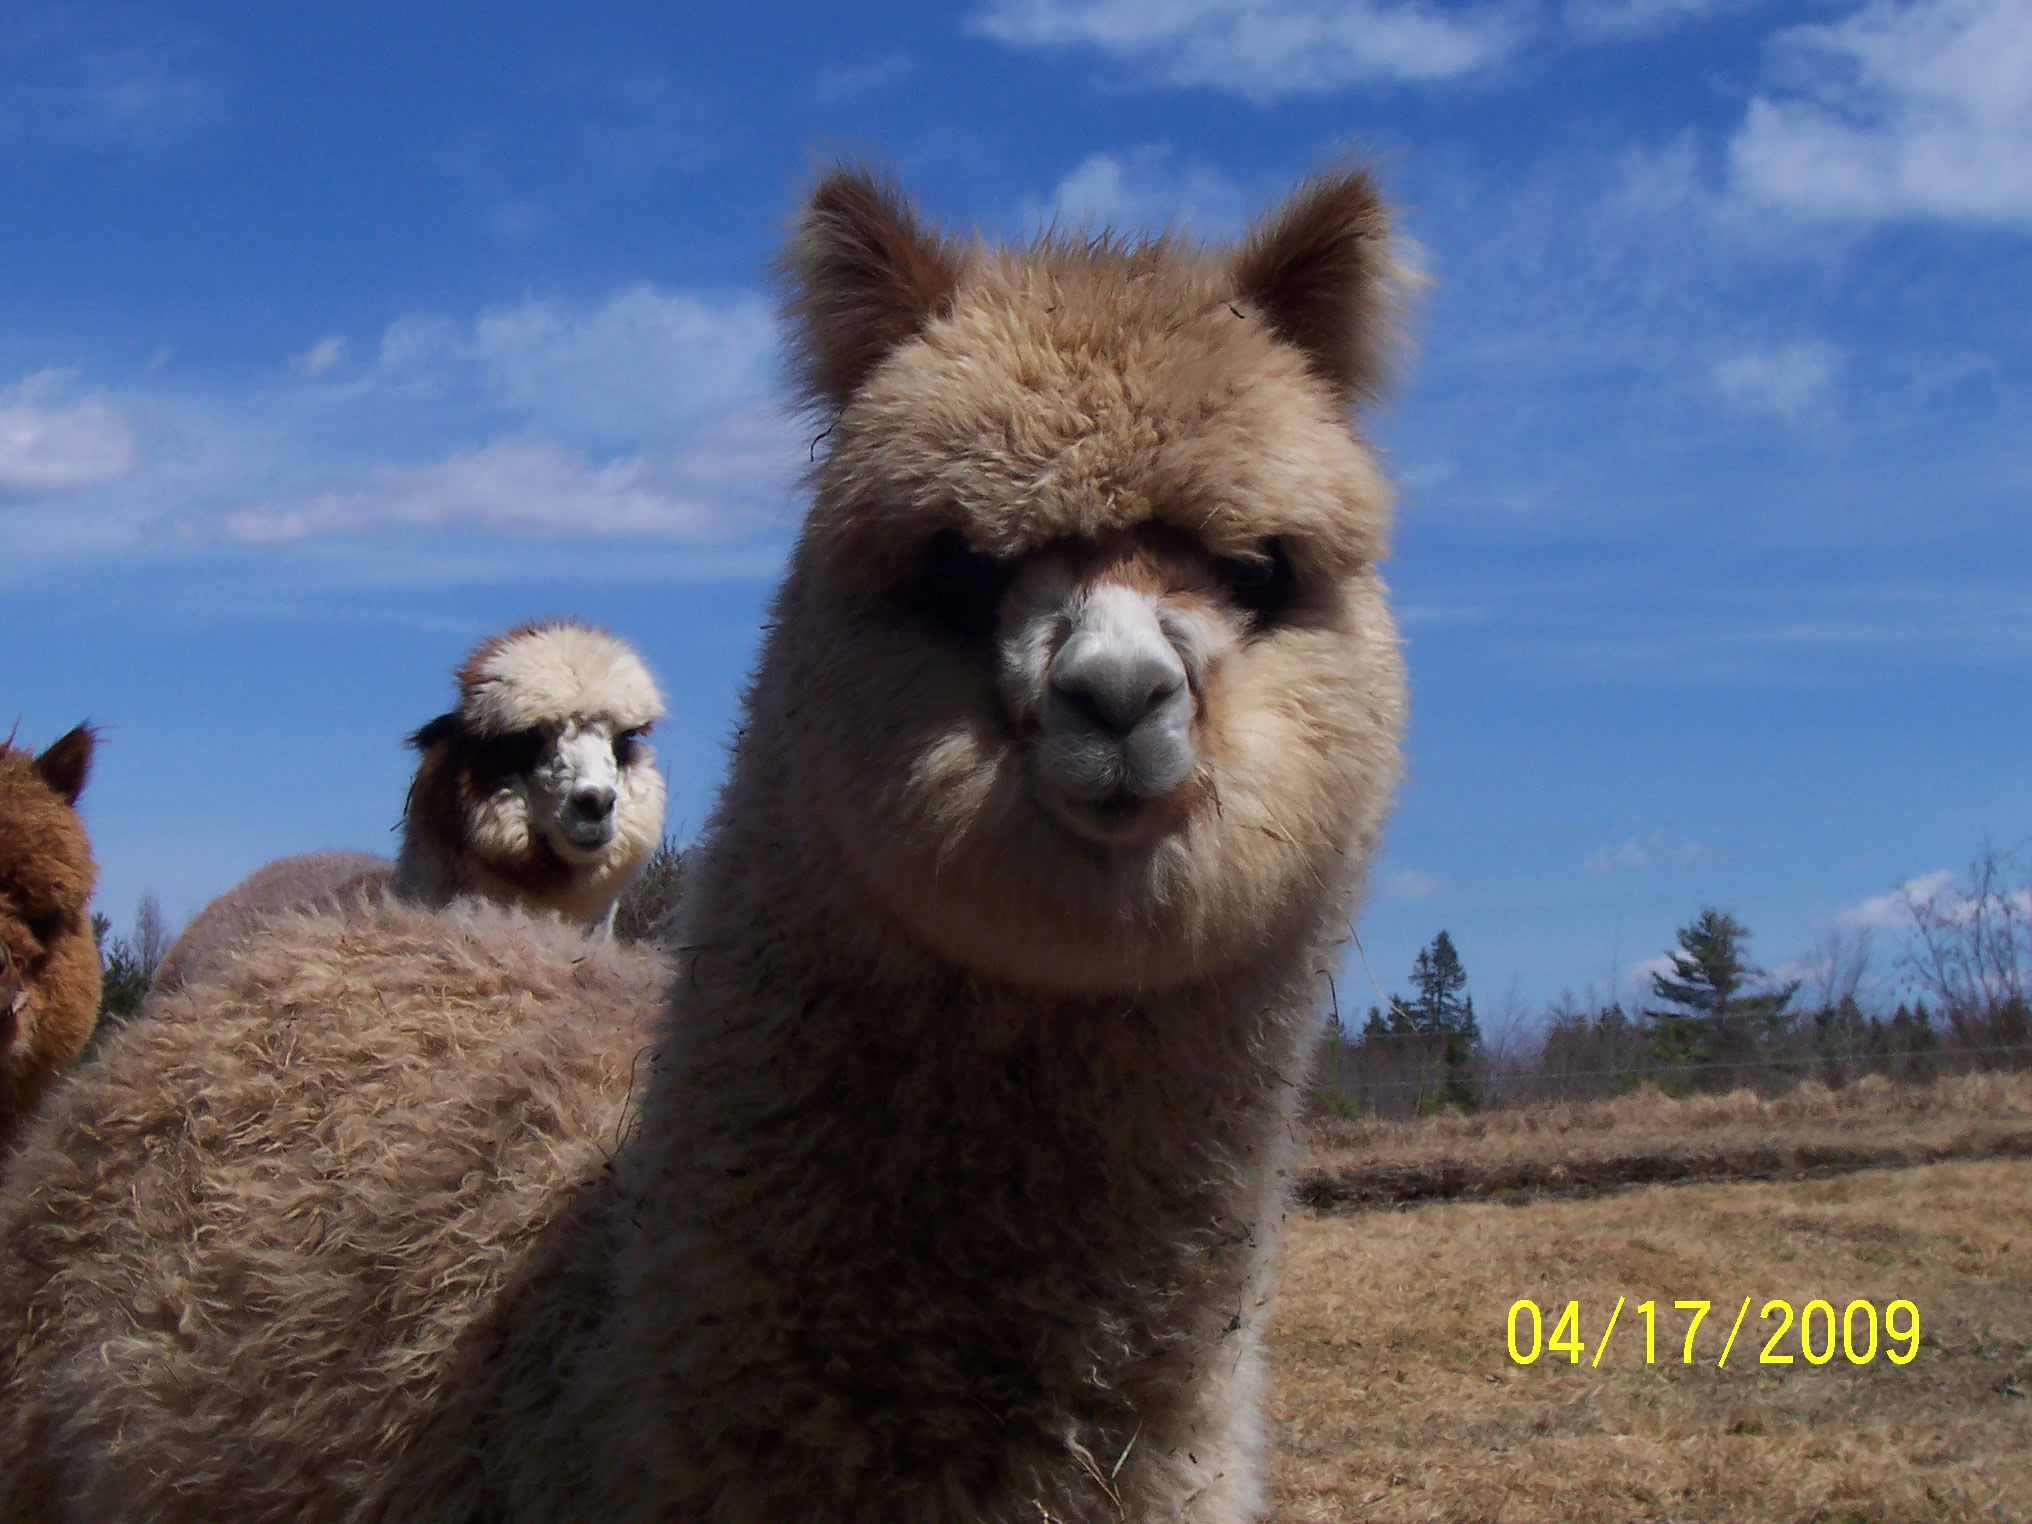 Alpacas are curious and gentle